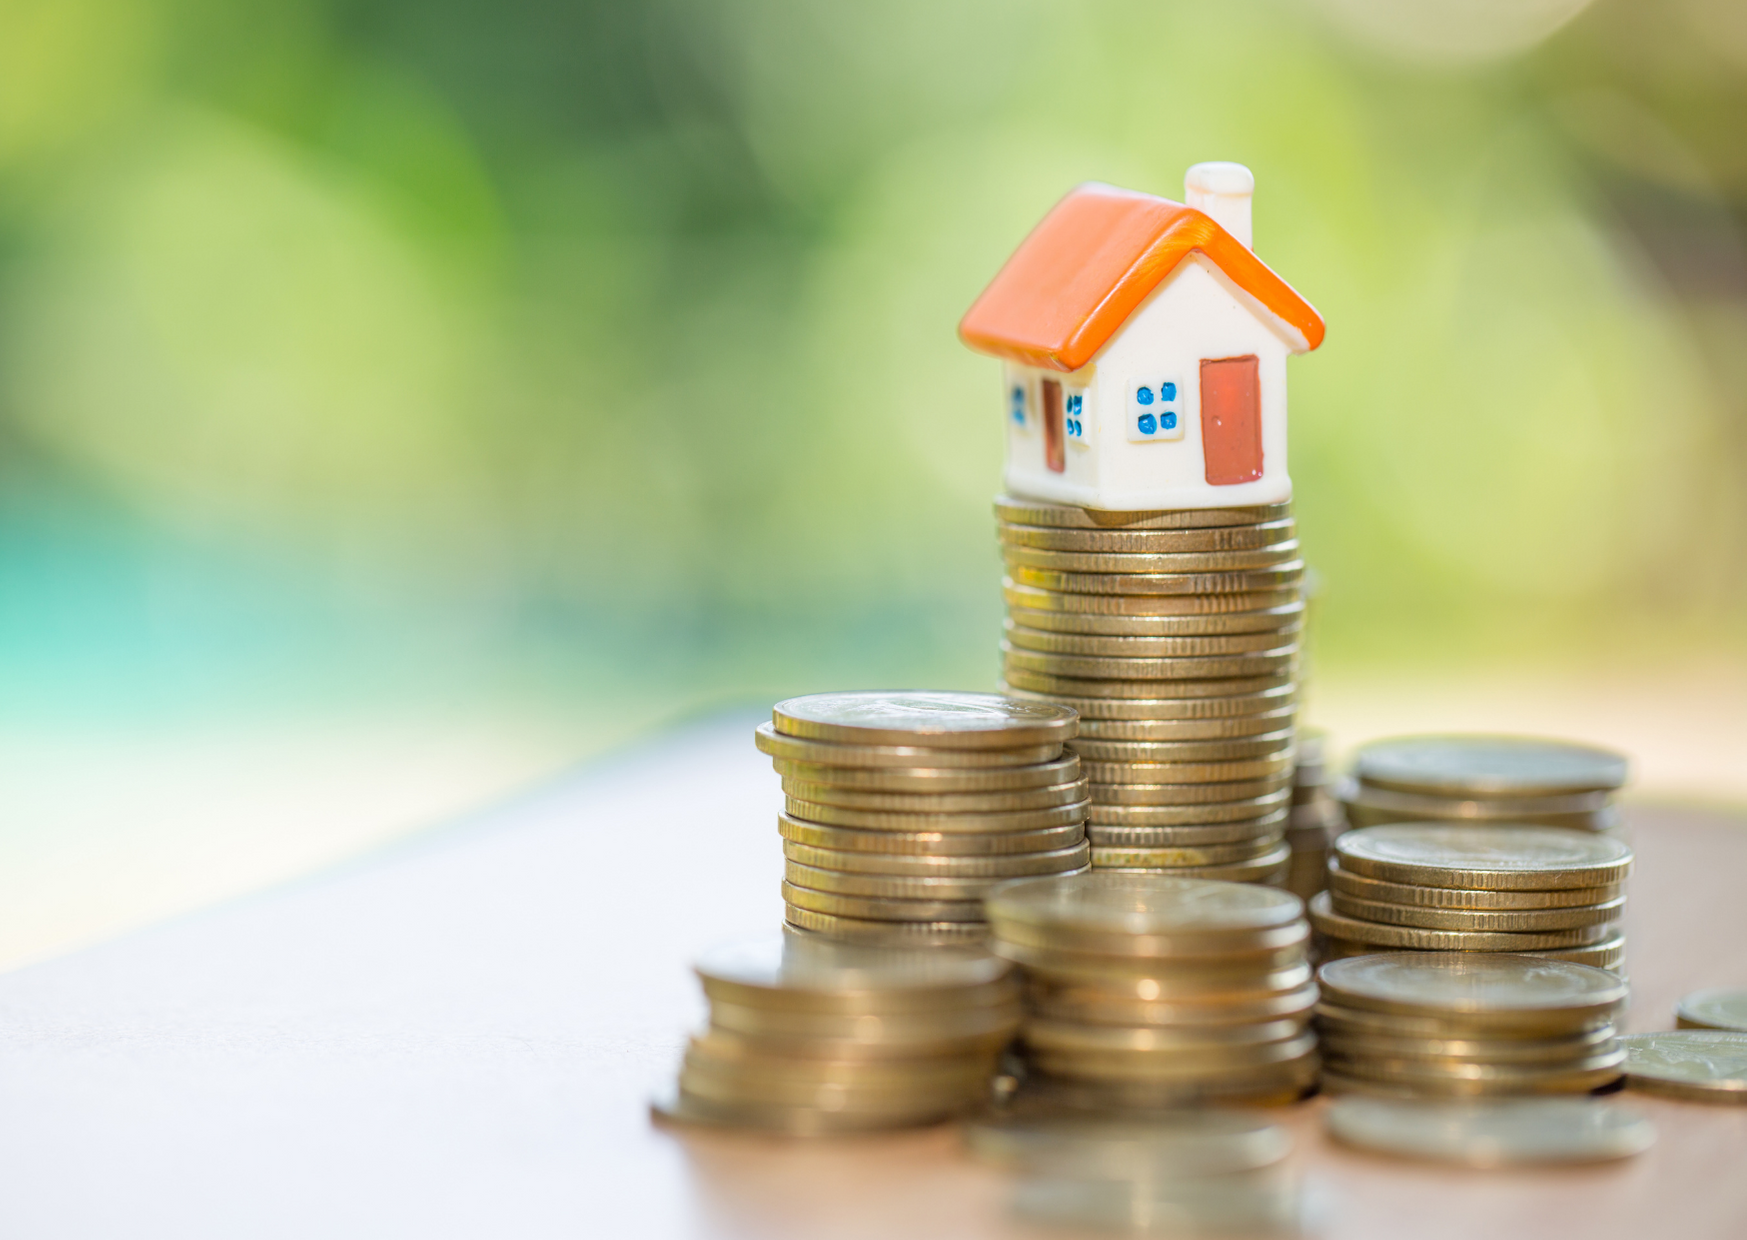 Mortgage Broker House Money Coins Loan Loans Finance Financial Finances Expert Experts Advice Homeloan Carloan Insurance Property Market Photography Realestate Real Estate